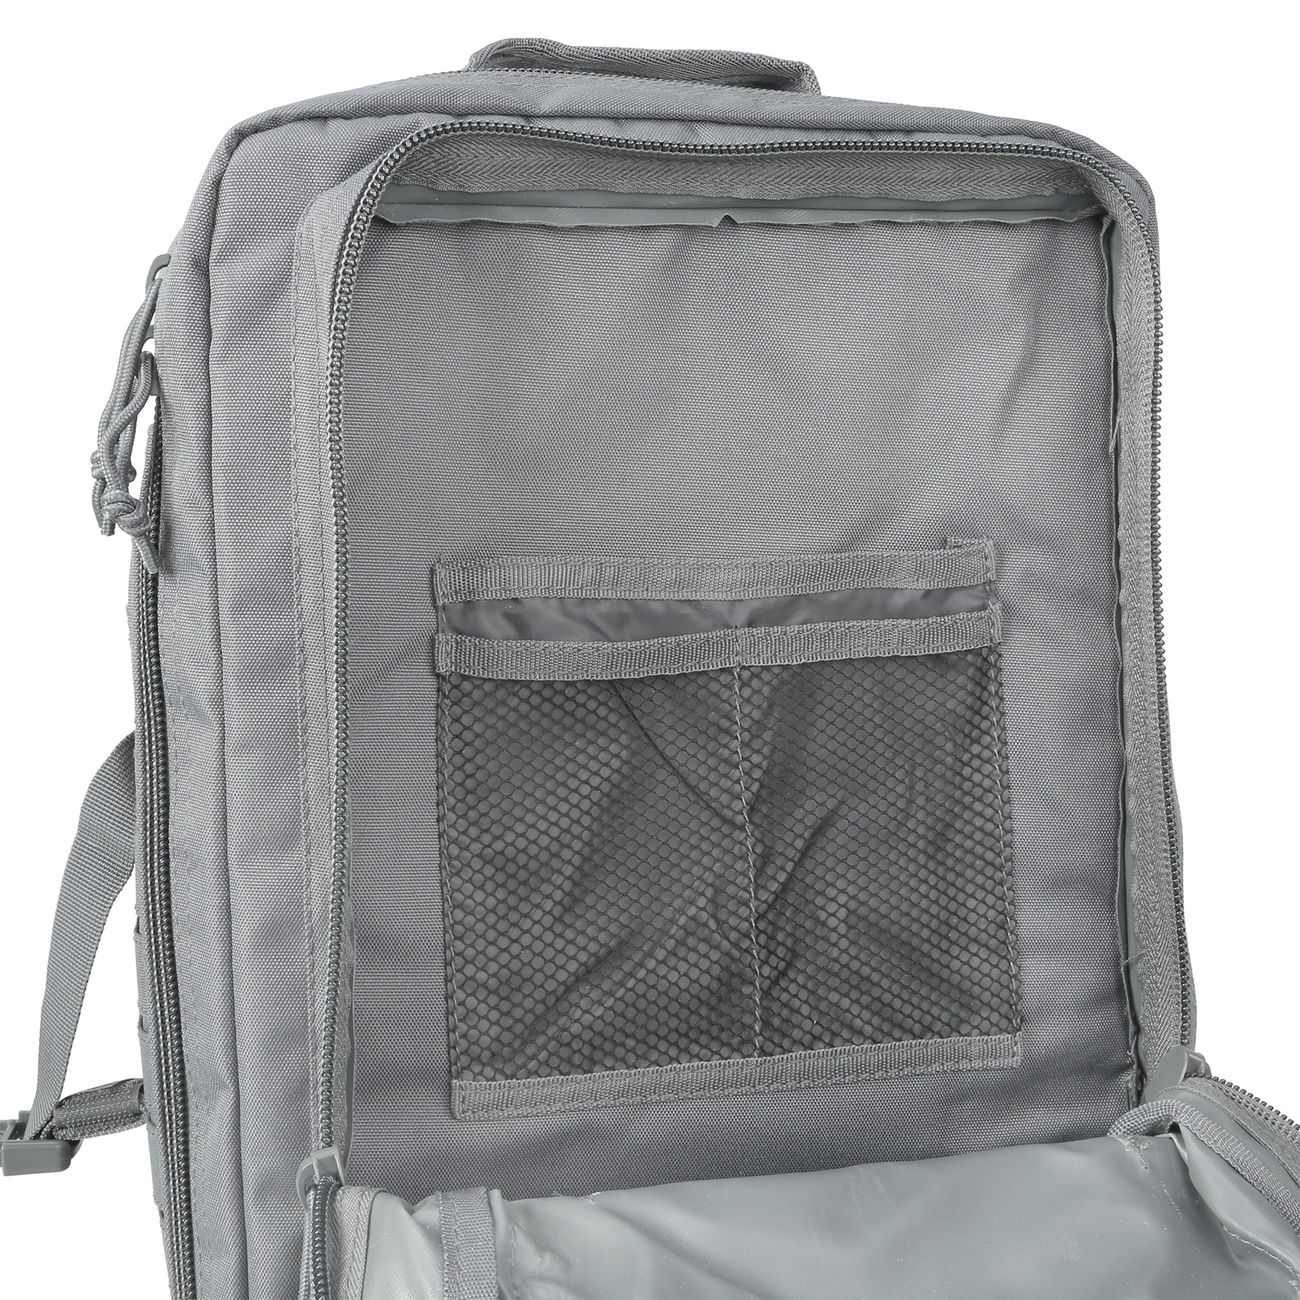 Mil-Tec Rucksack US Assault Pack Laser Cut large 36L Urban grey 9